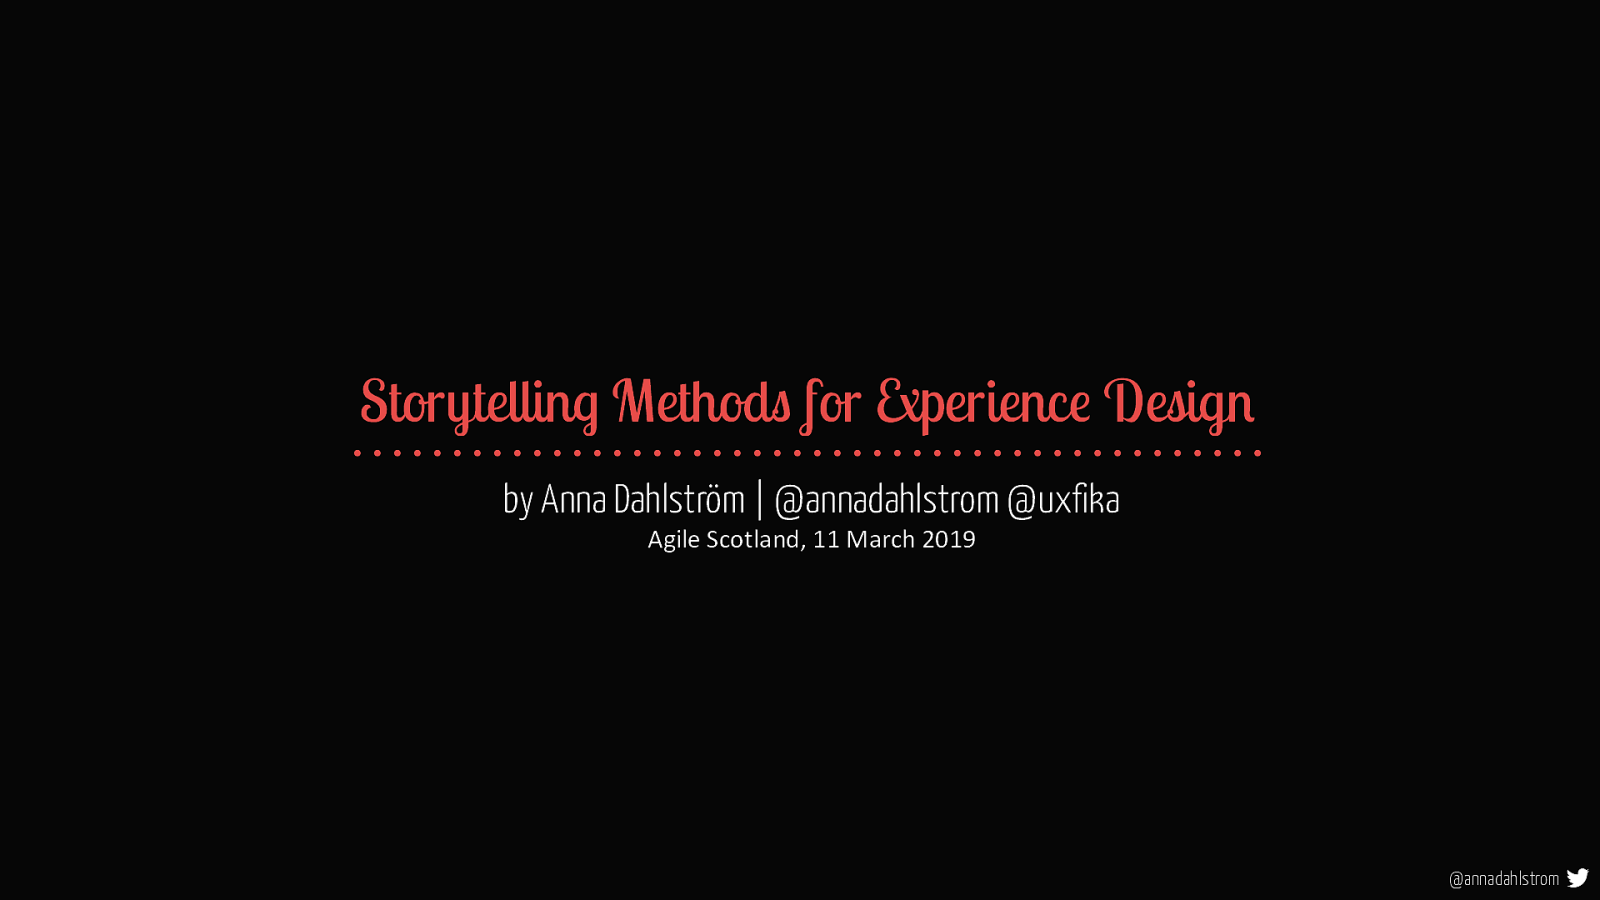 Storytelling Methods For Experience Design - Agile Scotland